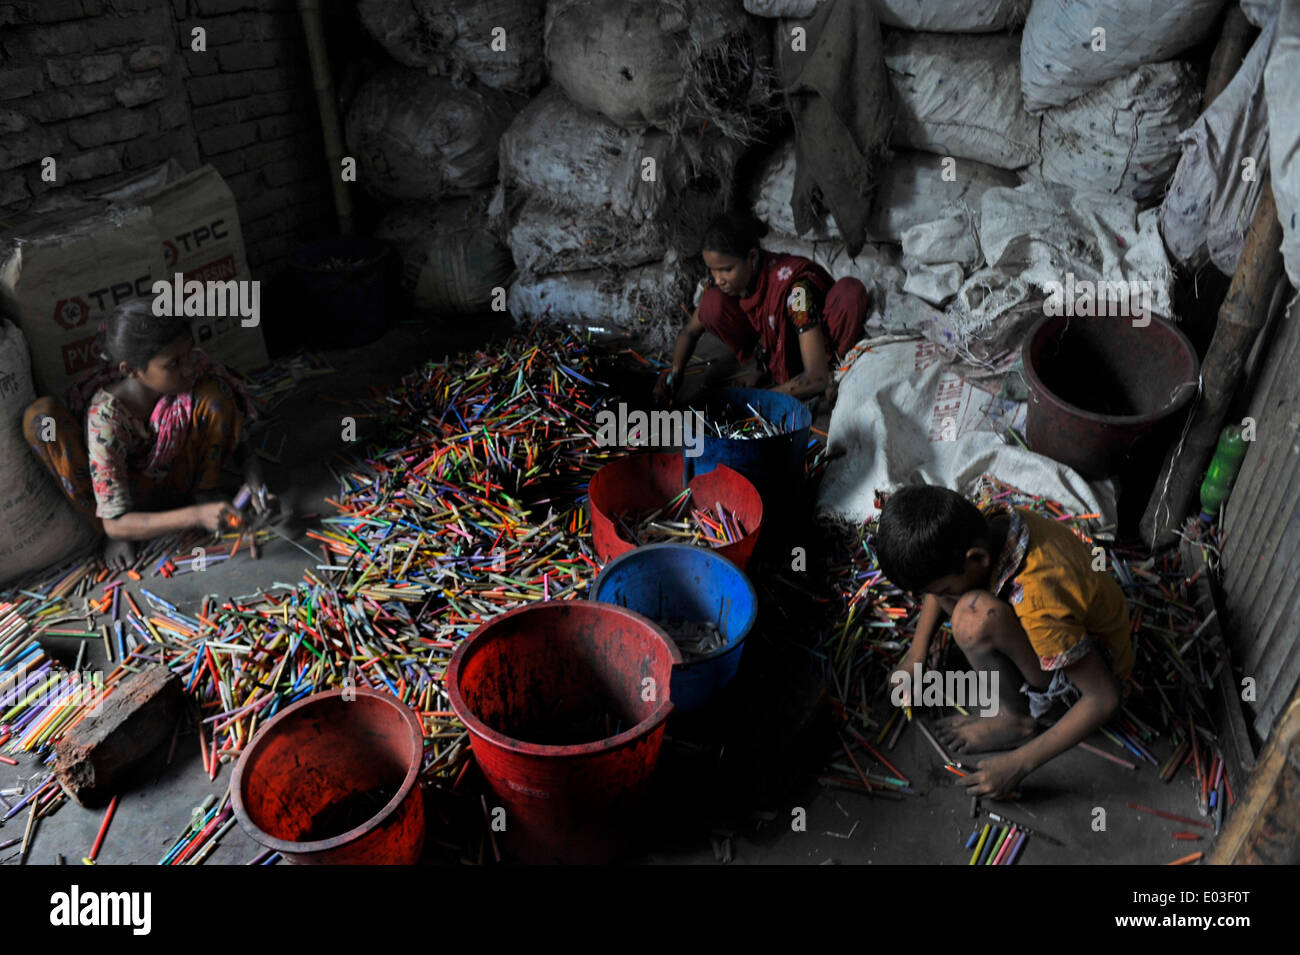 DHAKA, BANGLADESH - APRIL 30: According to the Labor Law of Bangladesh, the minimum legal age for employment is 14. But 90 percent of child laborers work in small factories and workshops and on the street. The enforcement of labor law is virtually impossible. Poverty causes families to send children to work, often in hazardous and low-wage jobs. Children are paid less than adults, with many working up to twelve hours a day. Full-time work frequently prevents children from attending school. Long hours, low or no wages, poor food, isolation, and hazards in the working environment can severely af - Stock Image